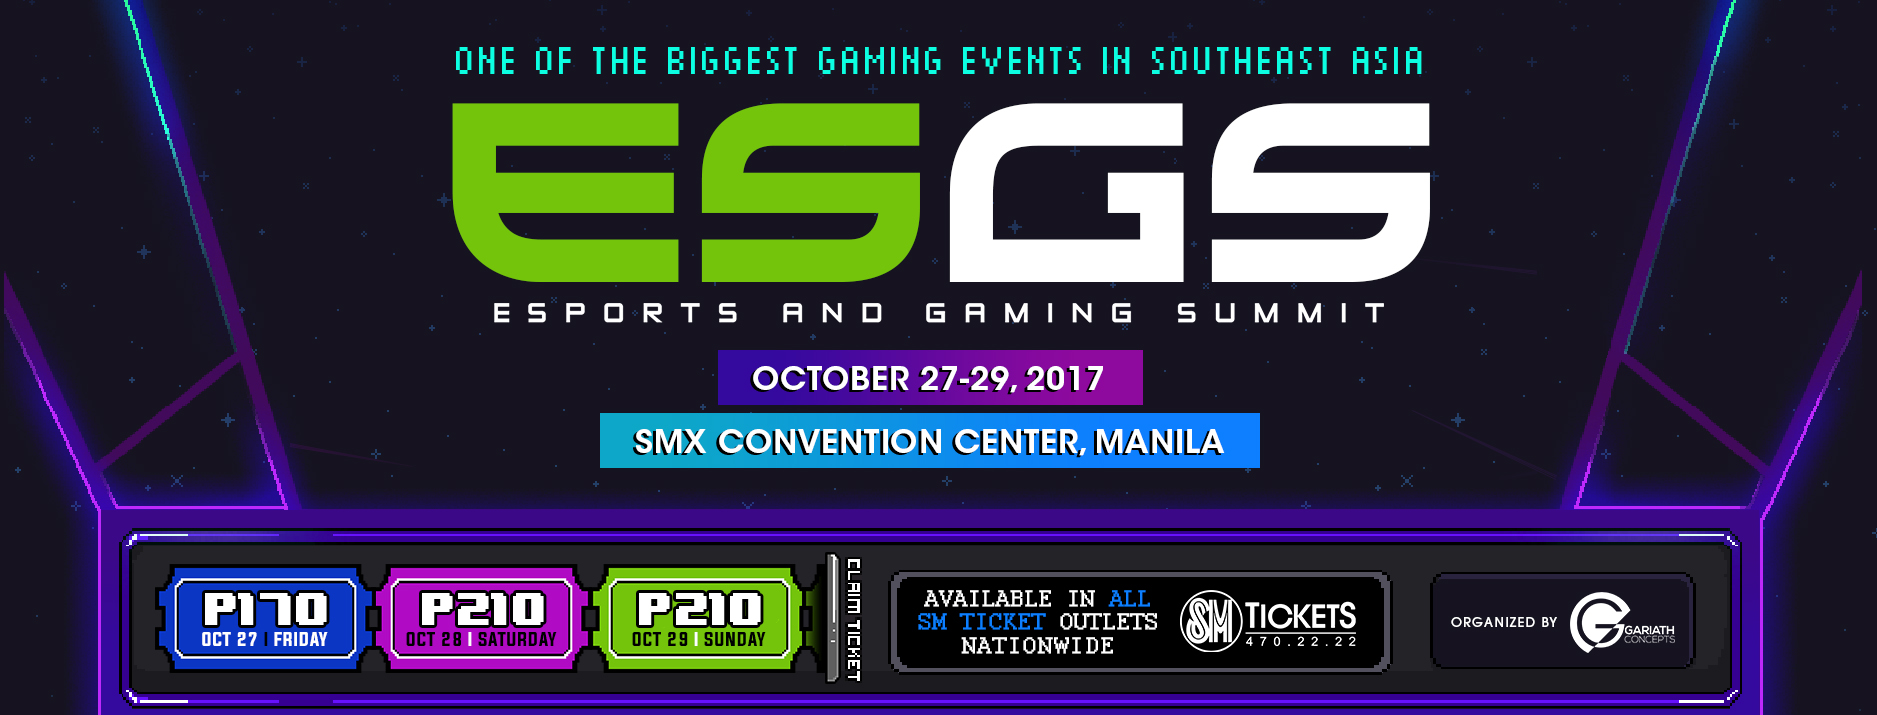 ESGS 2017 banner - Here's What to Look Forward to at ESGS 2017